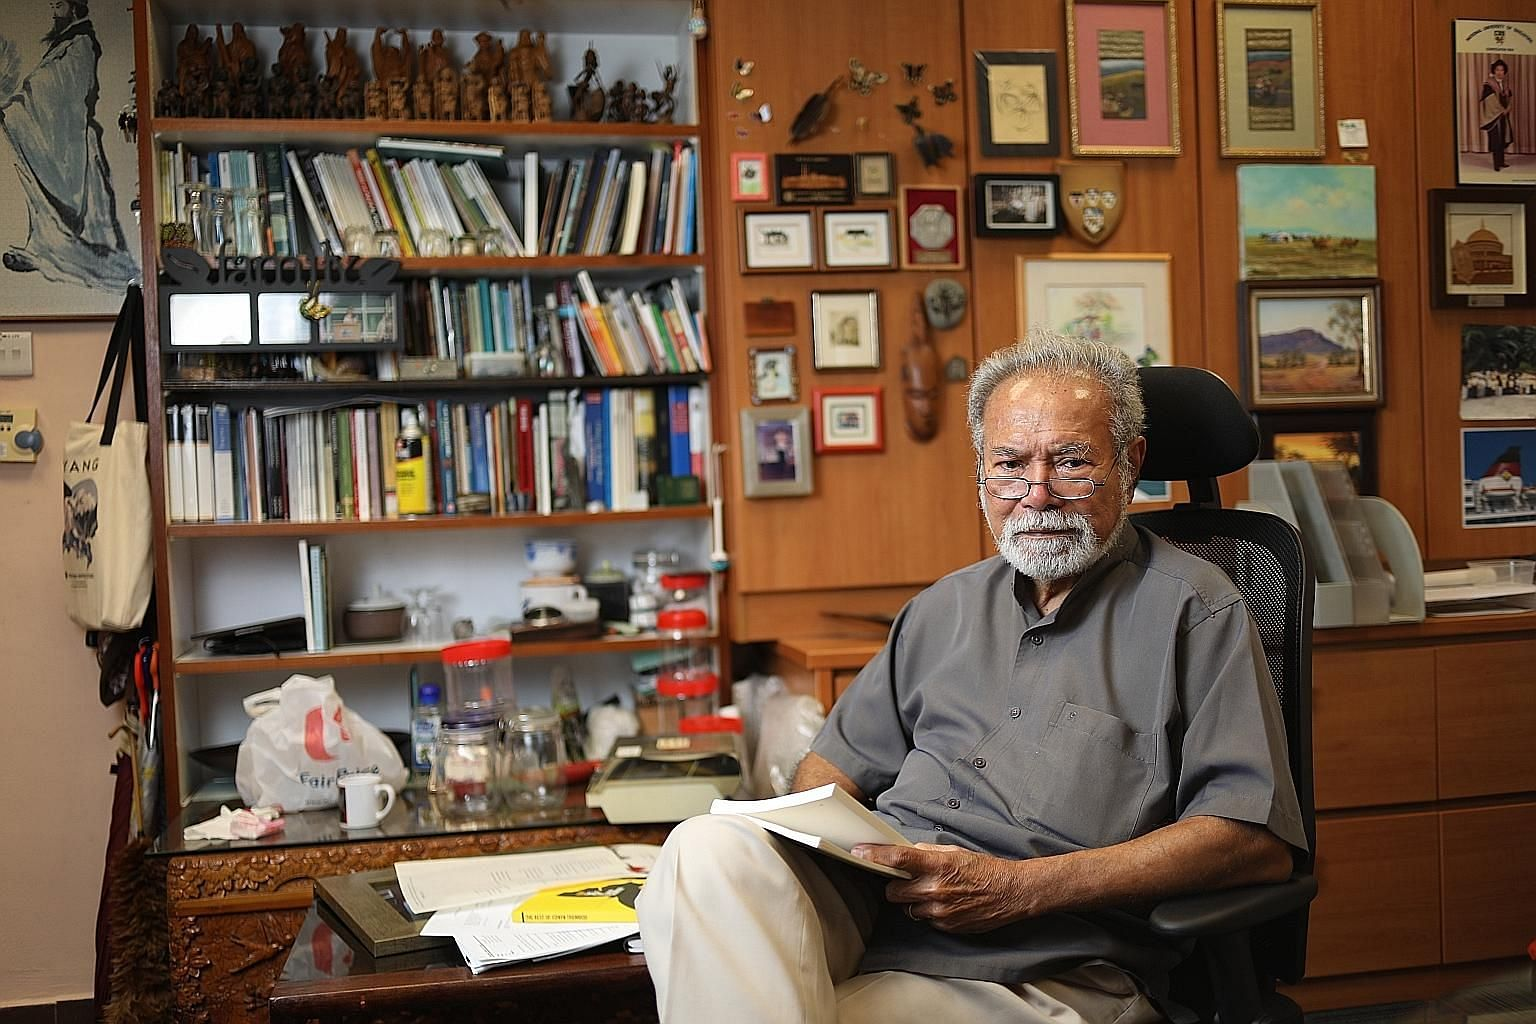 A Gathering Of Themes (above) by Edwin Thumboo (left) gathers 109 poems, from sweeping works on history and nationhood to reflections on religion to love poems about his wife.